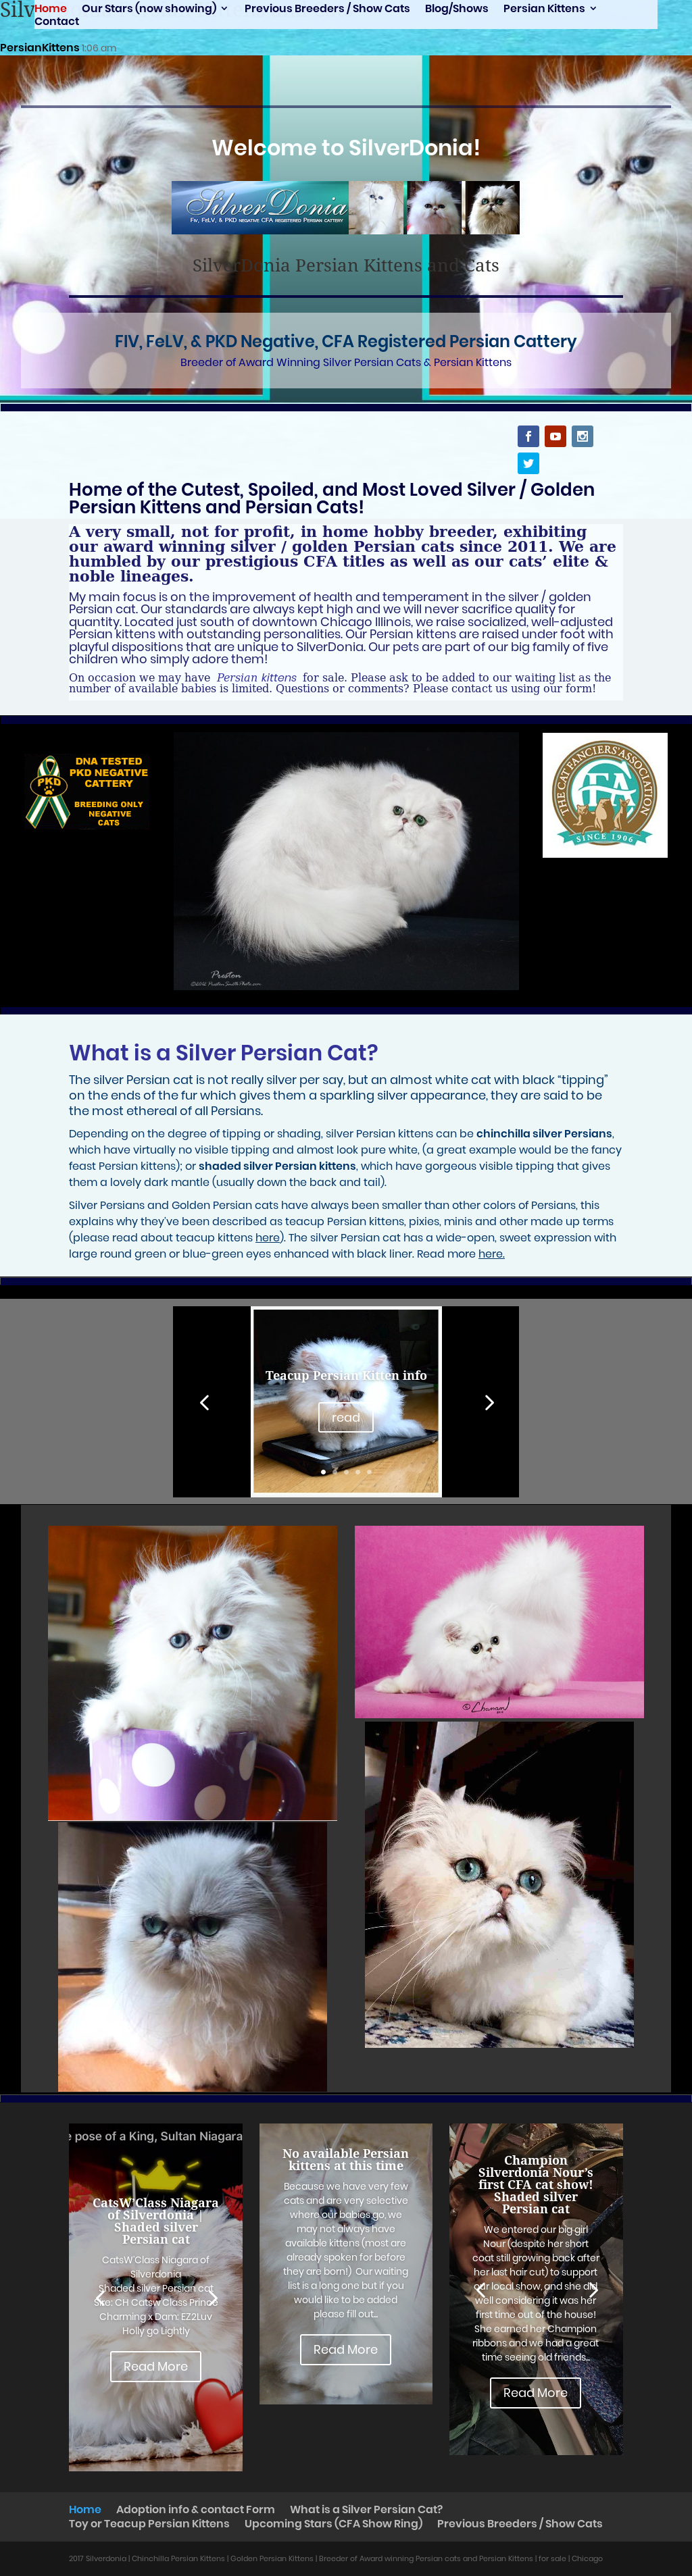 Owler Reports - Silverdonia Persians Blog Chinchilla Silver